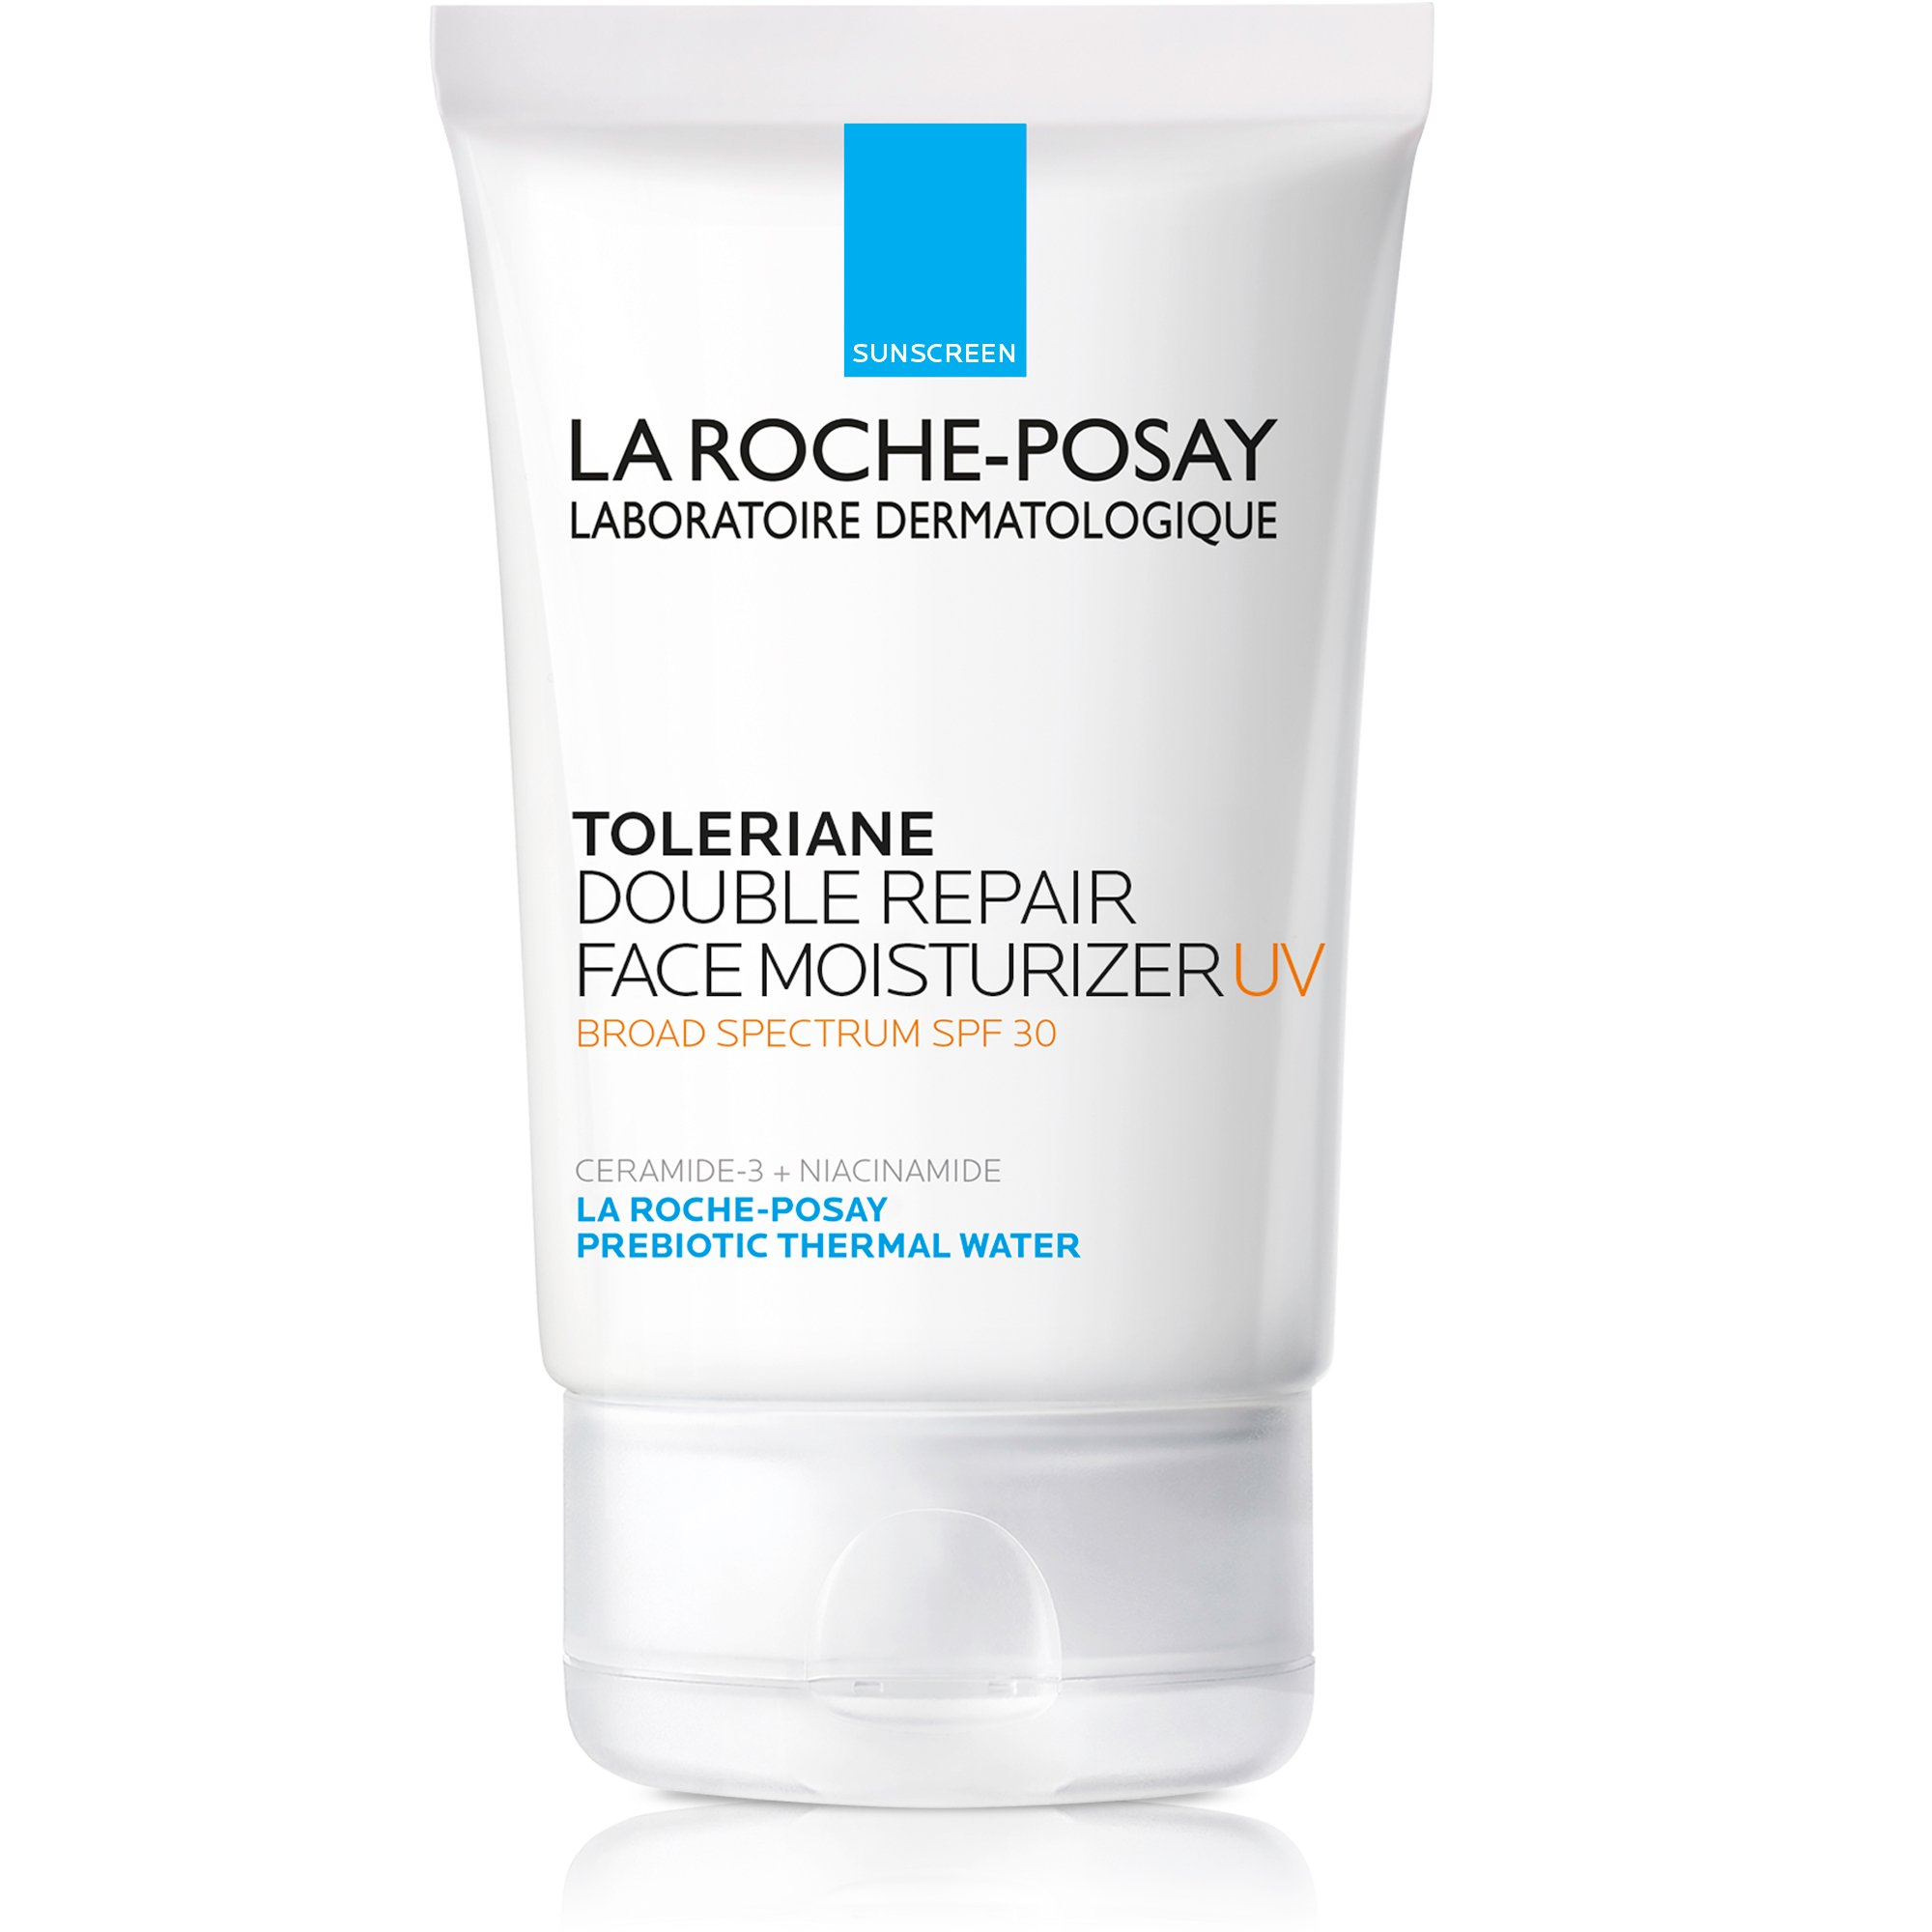 Toleriane Hydrating Gentle Facial Cleanser by La Roche-Posay #12